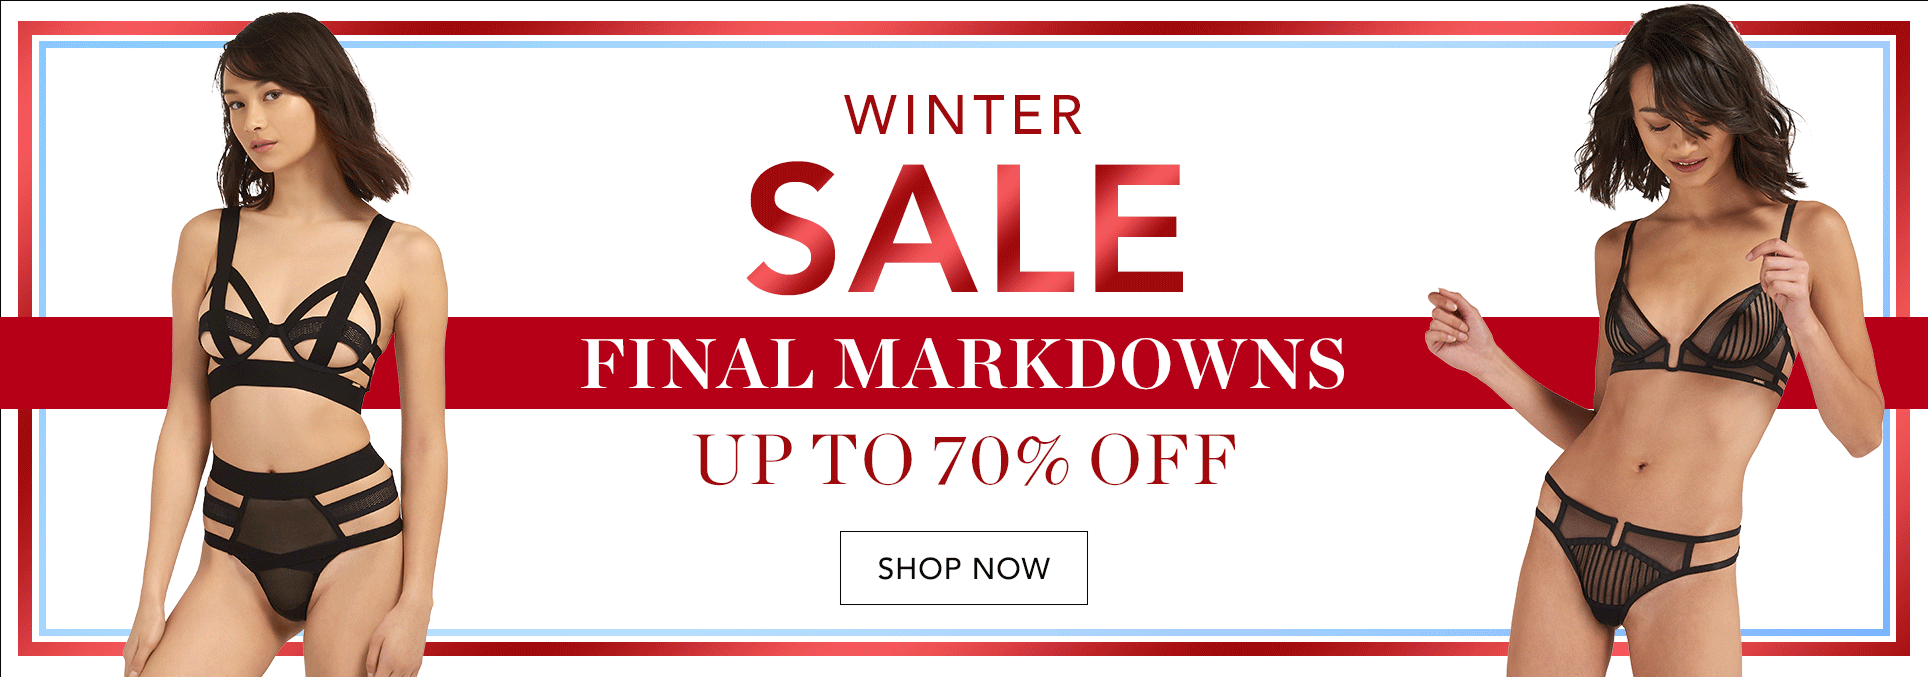 Bluebella: Winter Sale up to 70% off luxury lingerie